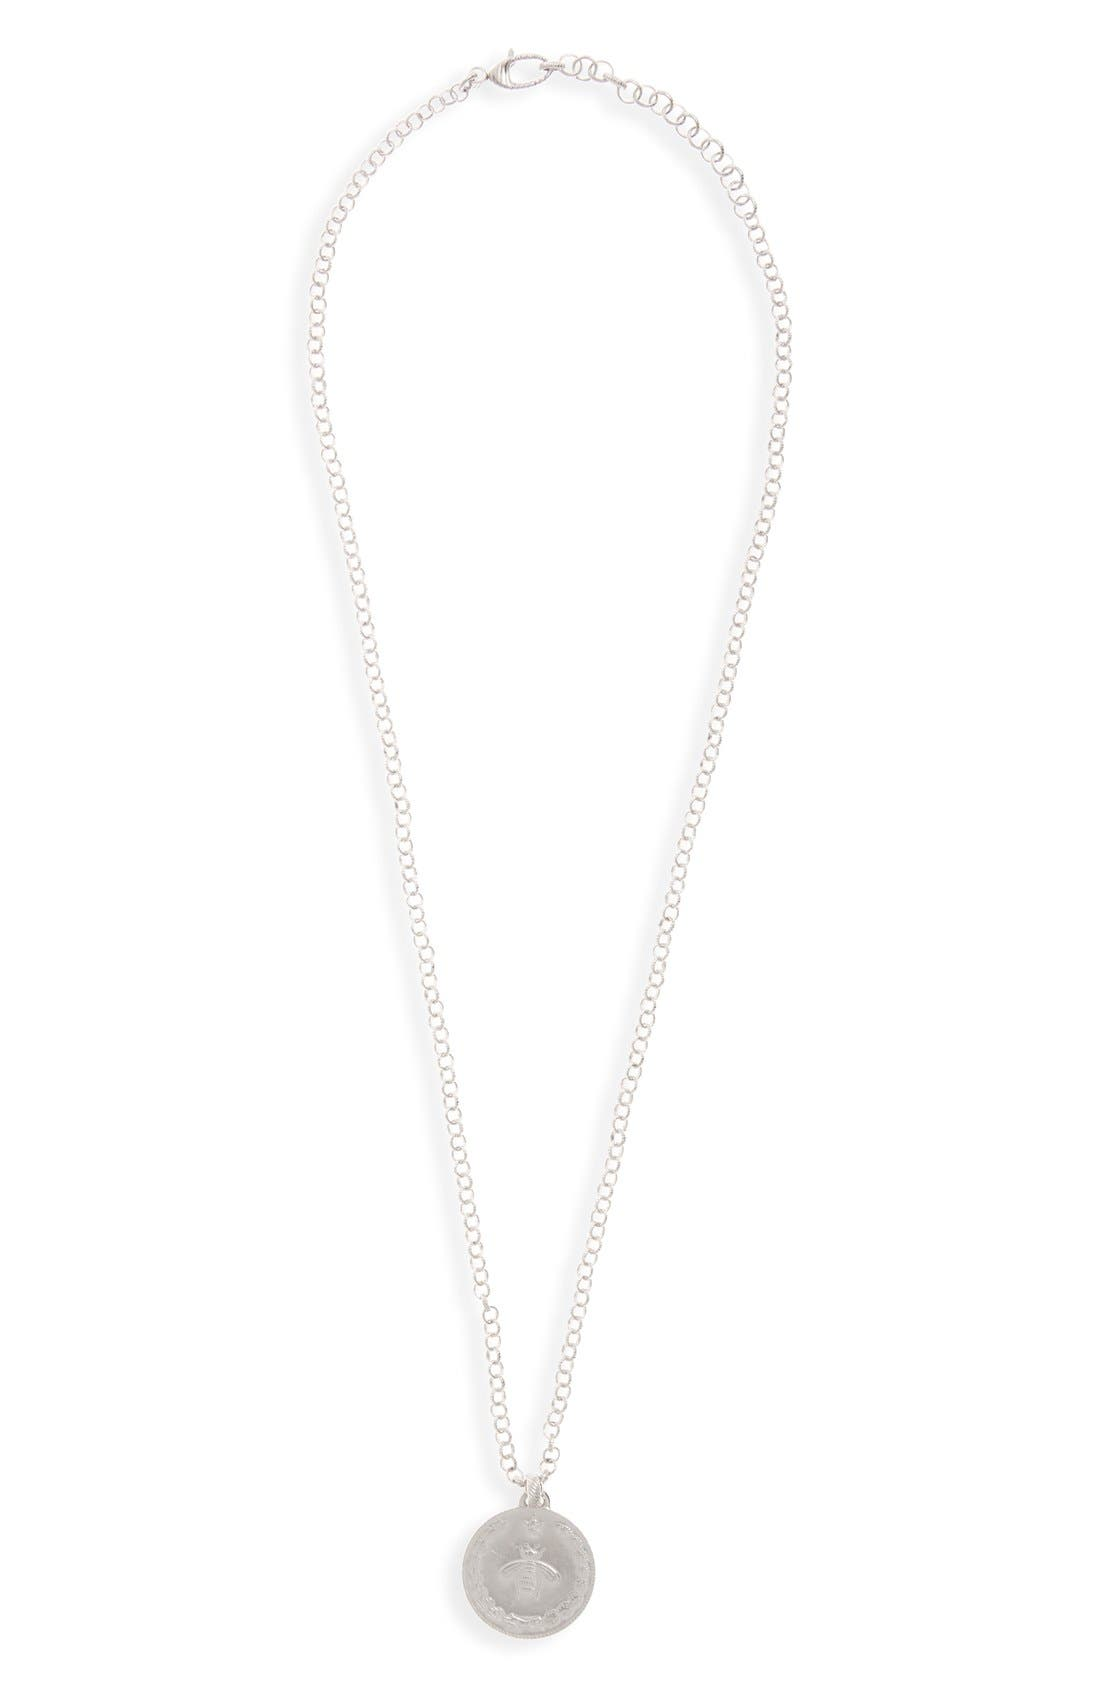 gucci necklace mens. gucci bee coin pendant necklace mens